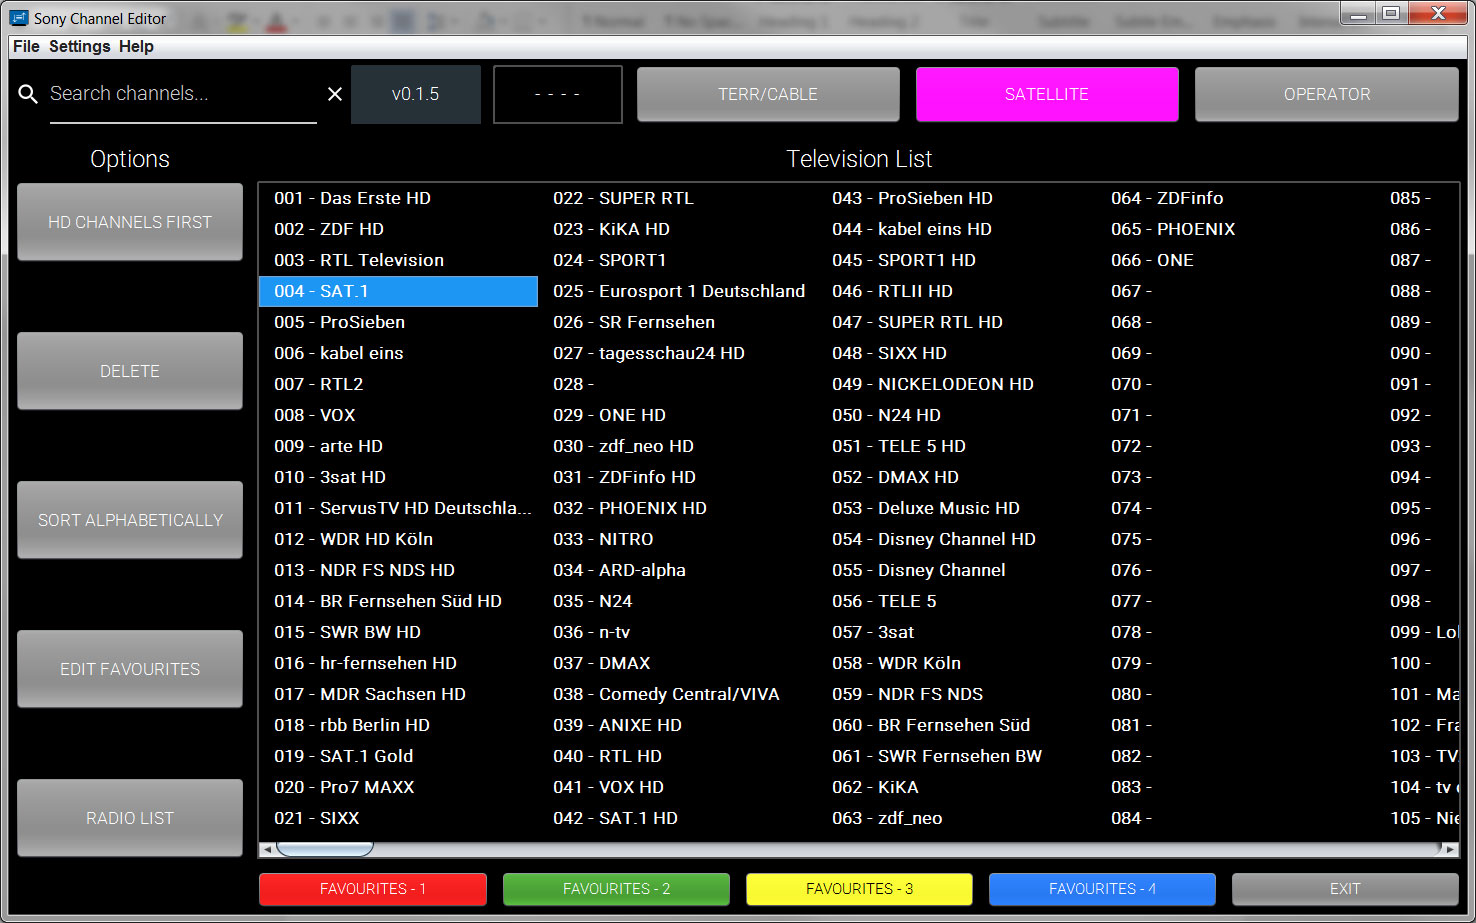 Sony releases tool to edit your TV channel list via a PC - FlatpanelsHD